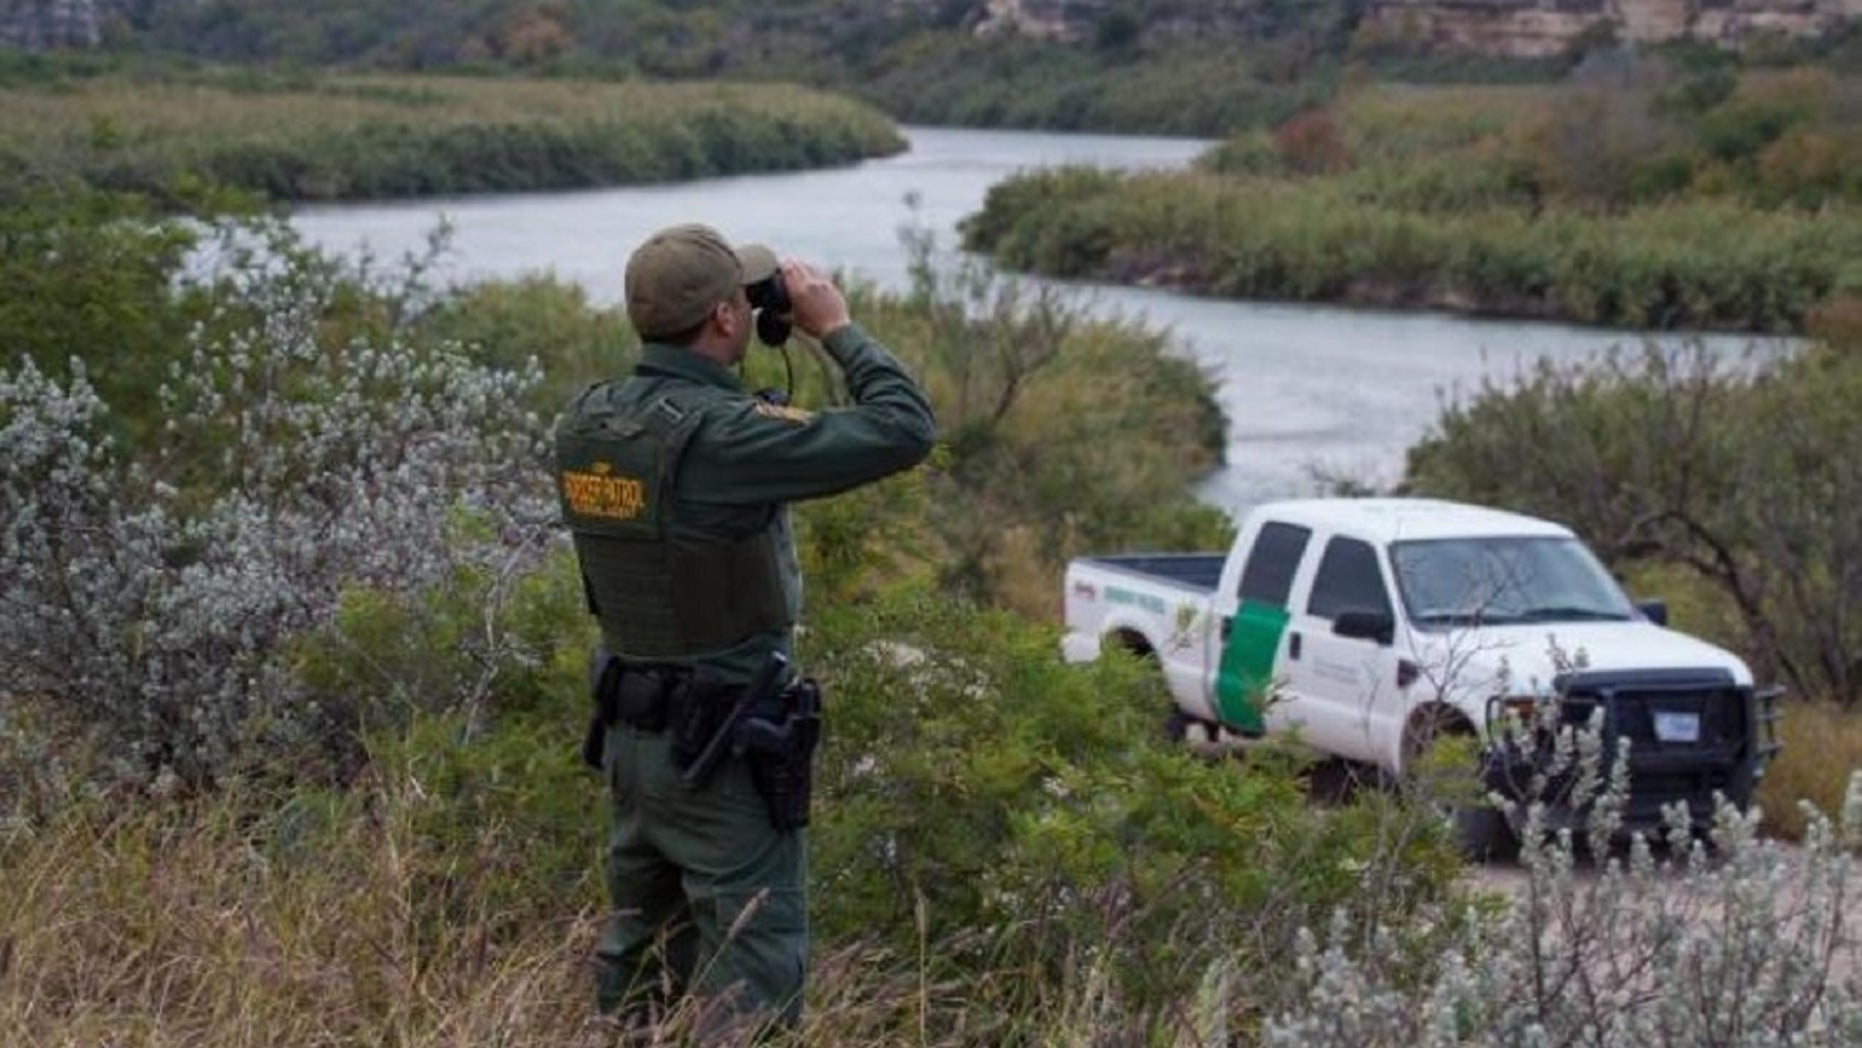 A Border Patrol agent overlooks Mexico from Eagle Pass, Texas. A Honduran woman detained while trying to cross into the U.S. illegally claims she was kidnapped and held for ransom by human smugglers in Mexico.